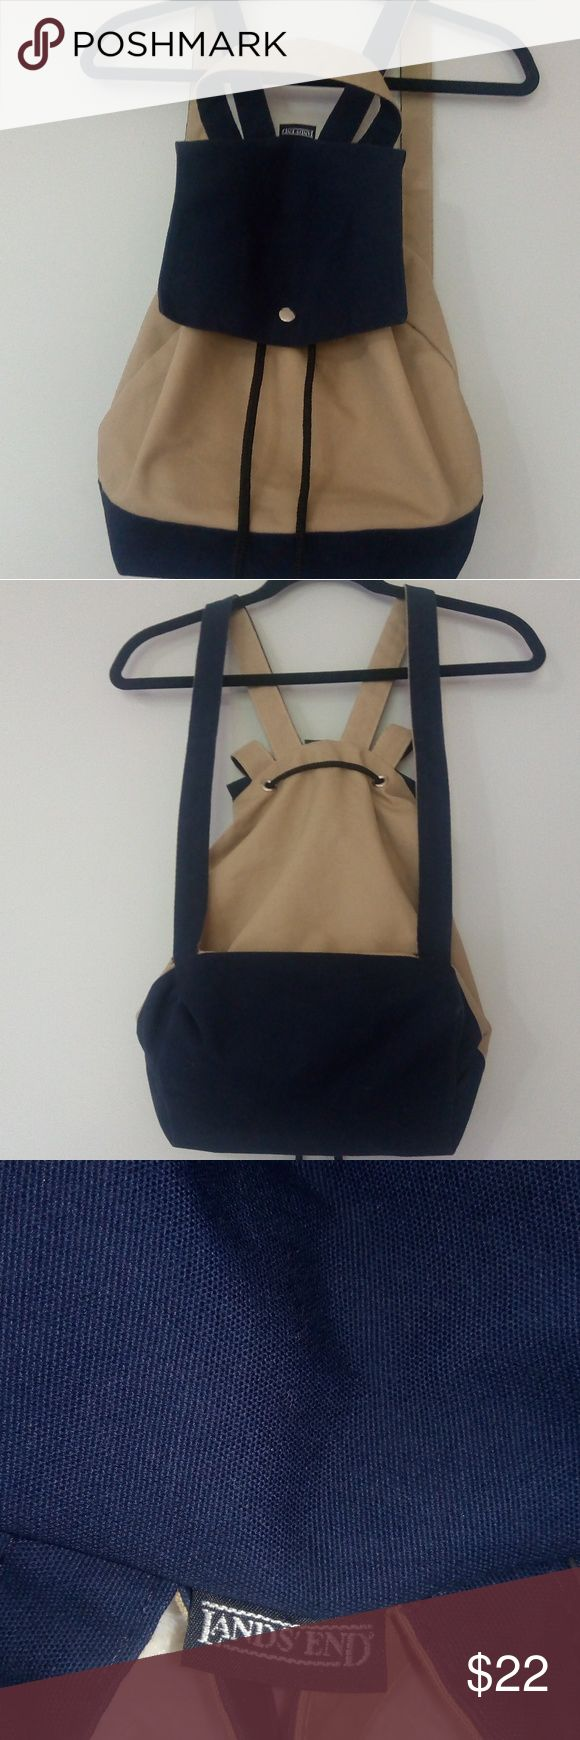 """Lands' End Backpack This is a medium sized fabric drawstring backpack with a silver press button closure from Lands' End. It is made in the USA and is in amazing condition. Straps: 25"""" long Width: 16.5"""" Length: 13"""" long Color: Navy and tan Lands' End Bags Backpacks"""